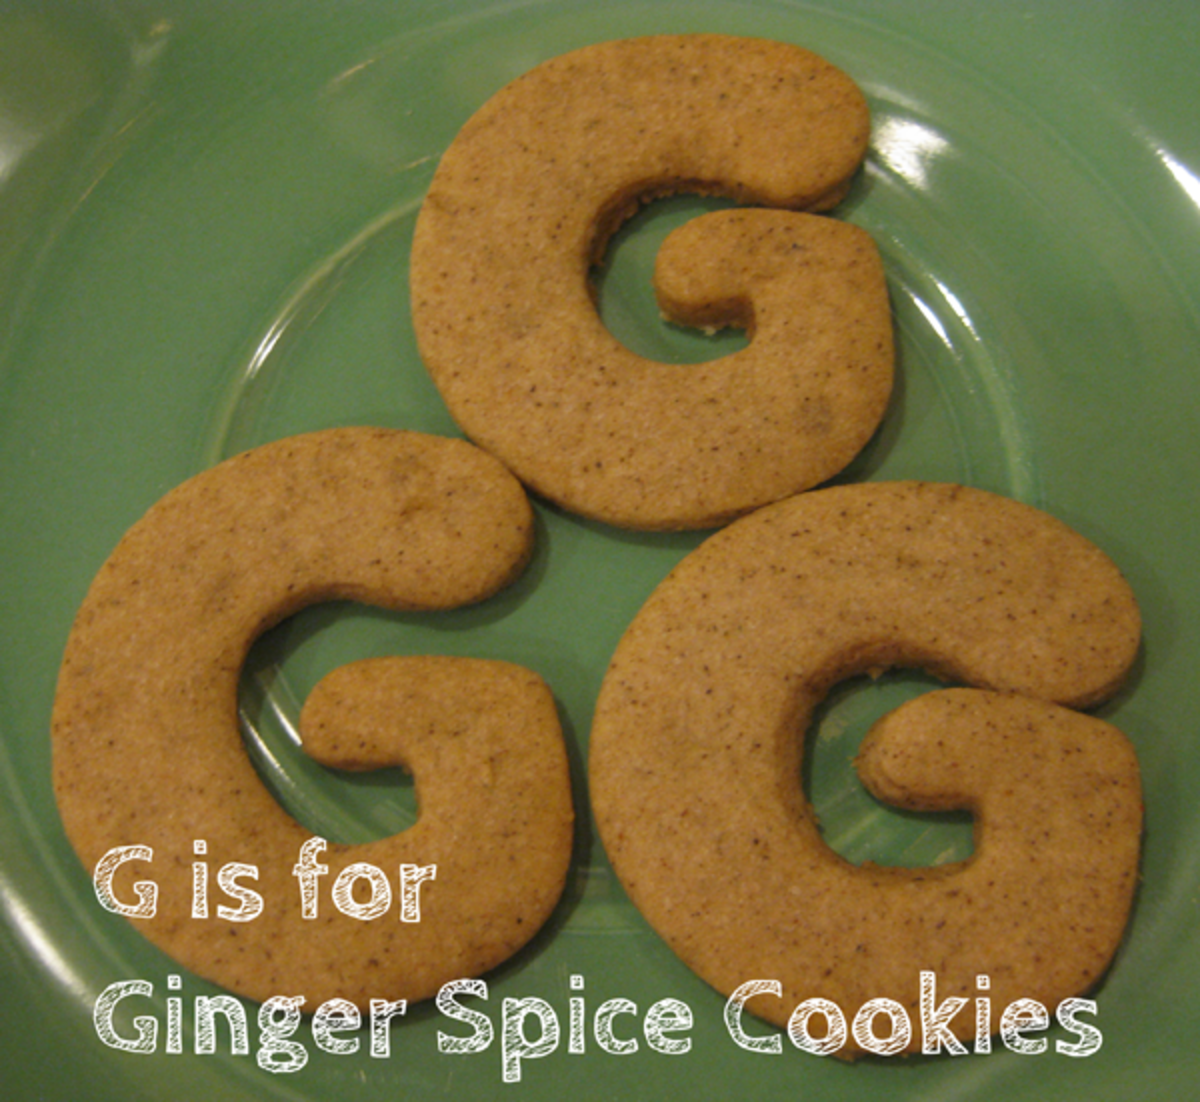 G is for Ginger Spice Cookies